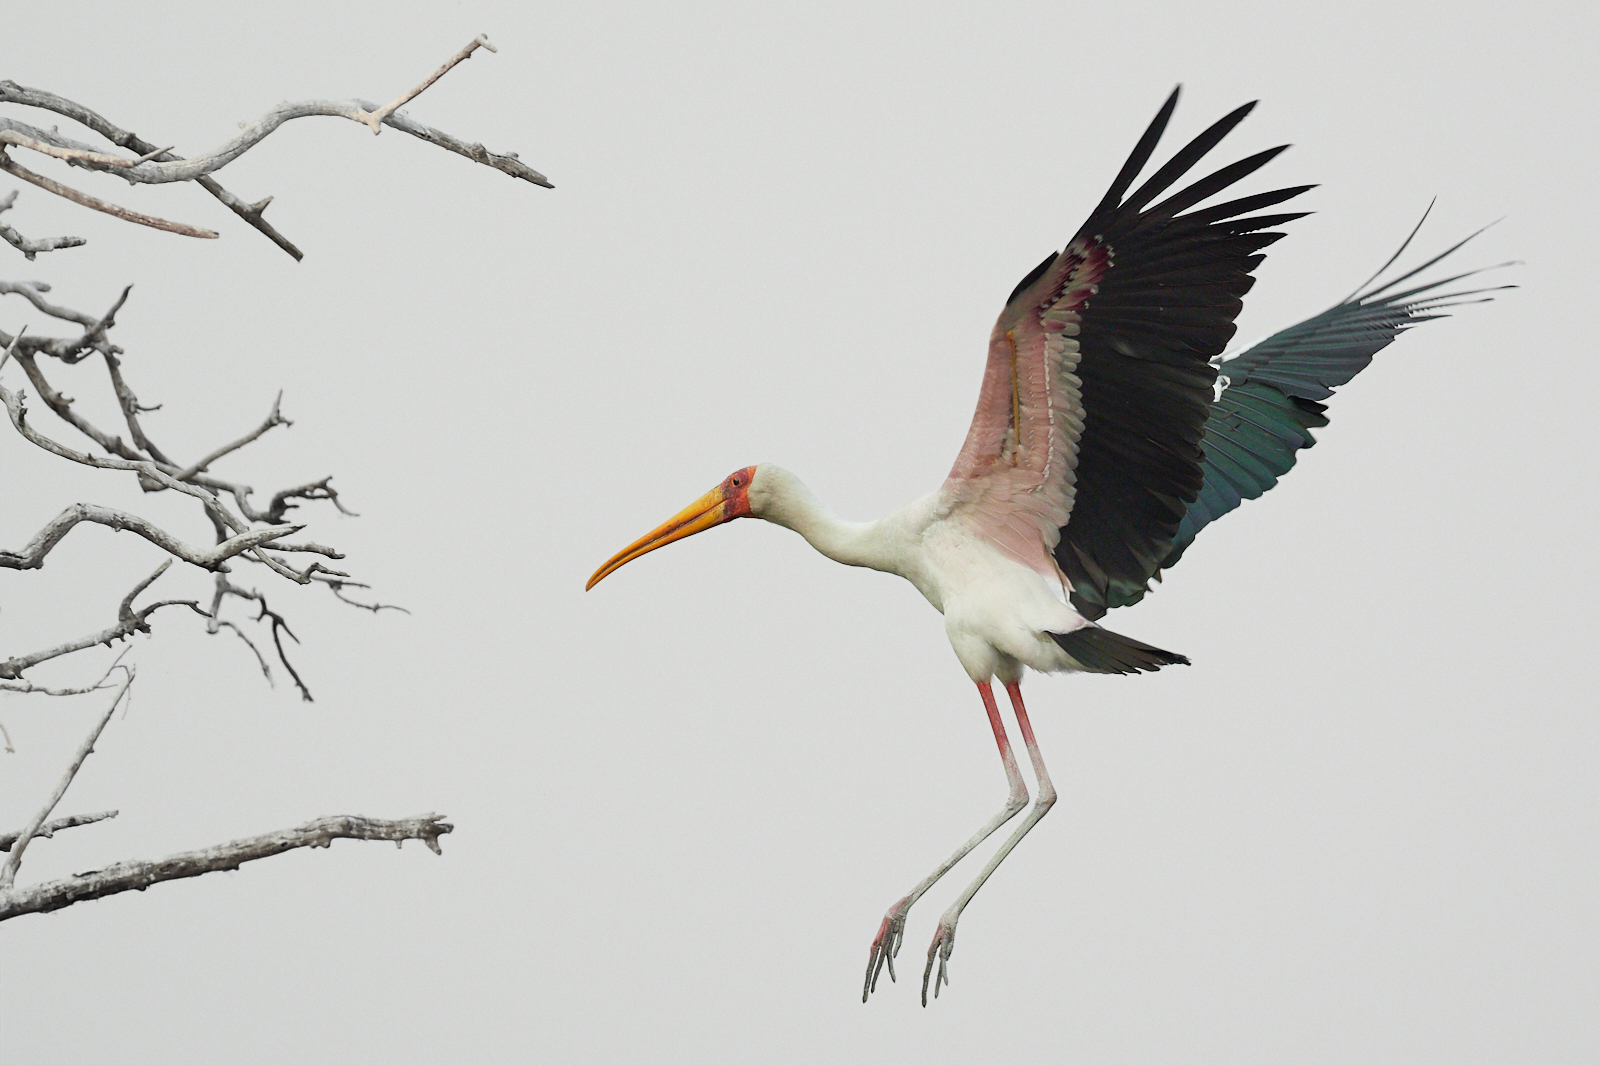 Yellow billed stork landing 1600x1200 sRGB.jpg